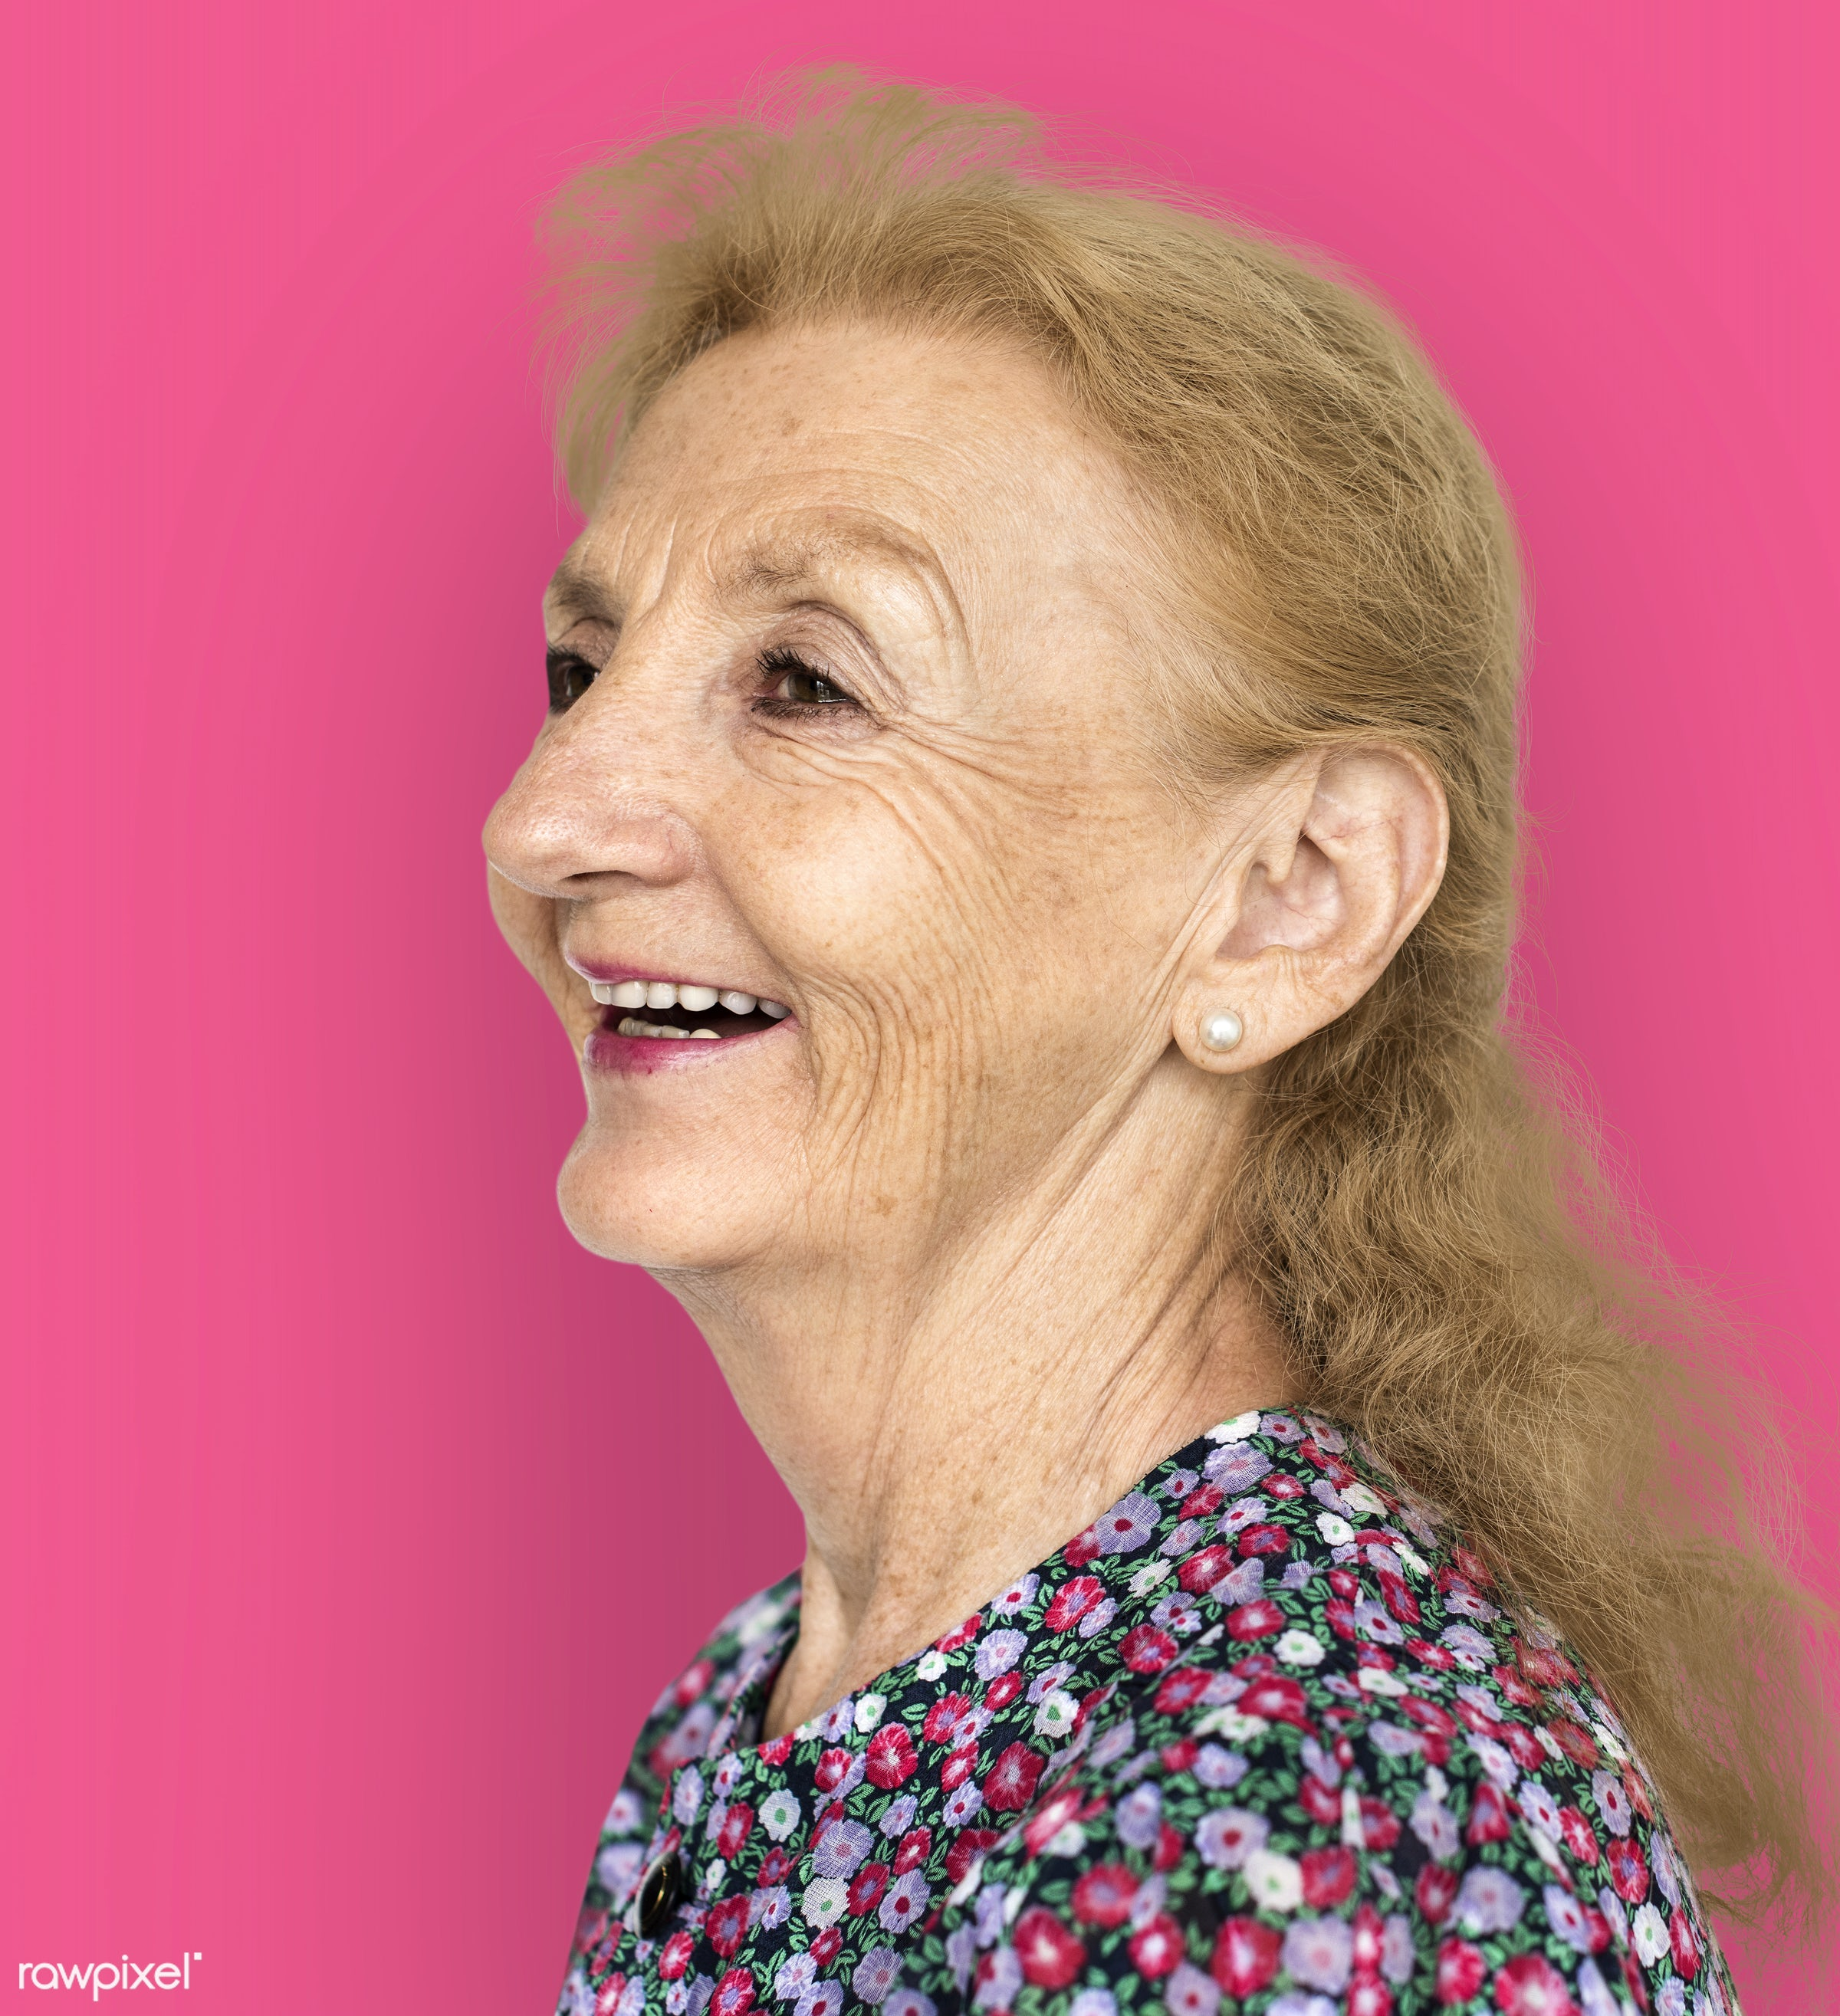 studio, expression, person, freedom, relax, people, caucasian, retirement, woman, lifestyle, pink, westerner, positive,...